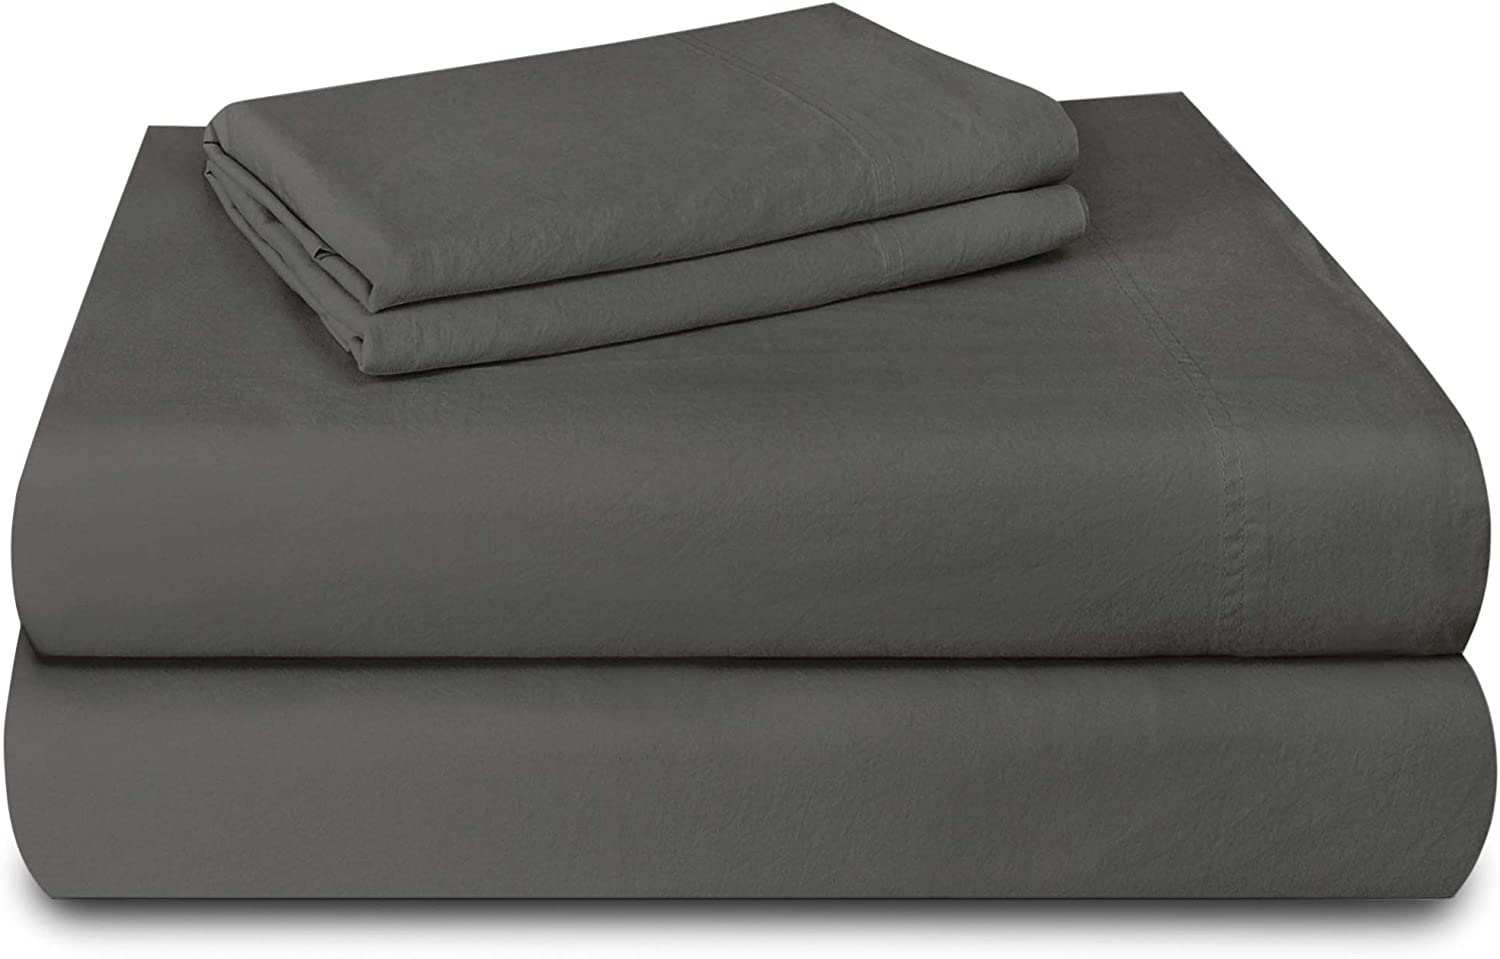 "Laundry by Design - Soft & Smooth, Pre-Shrunk 4 Piece Cotton Sheet Set, Fits Upto 16"" DEEP Pocket, Luxury Hotel Bedding, (Dark Gray, Queen)"